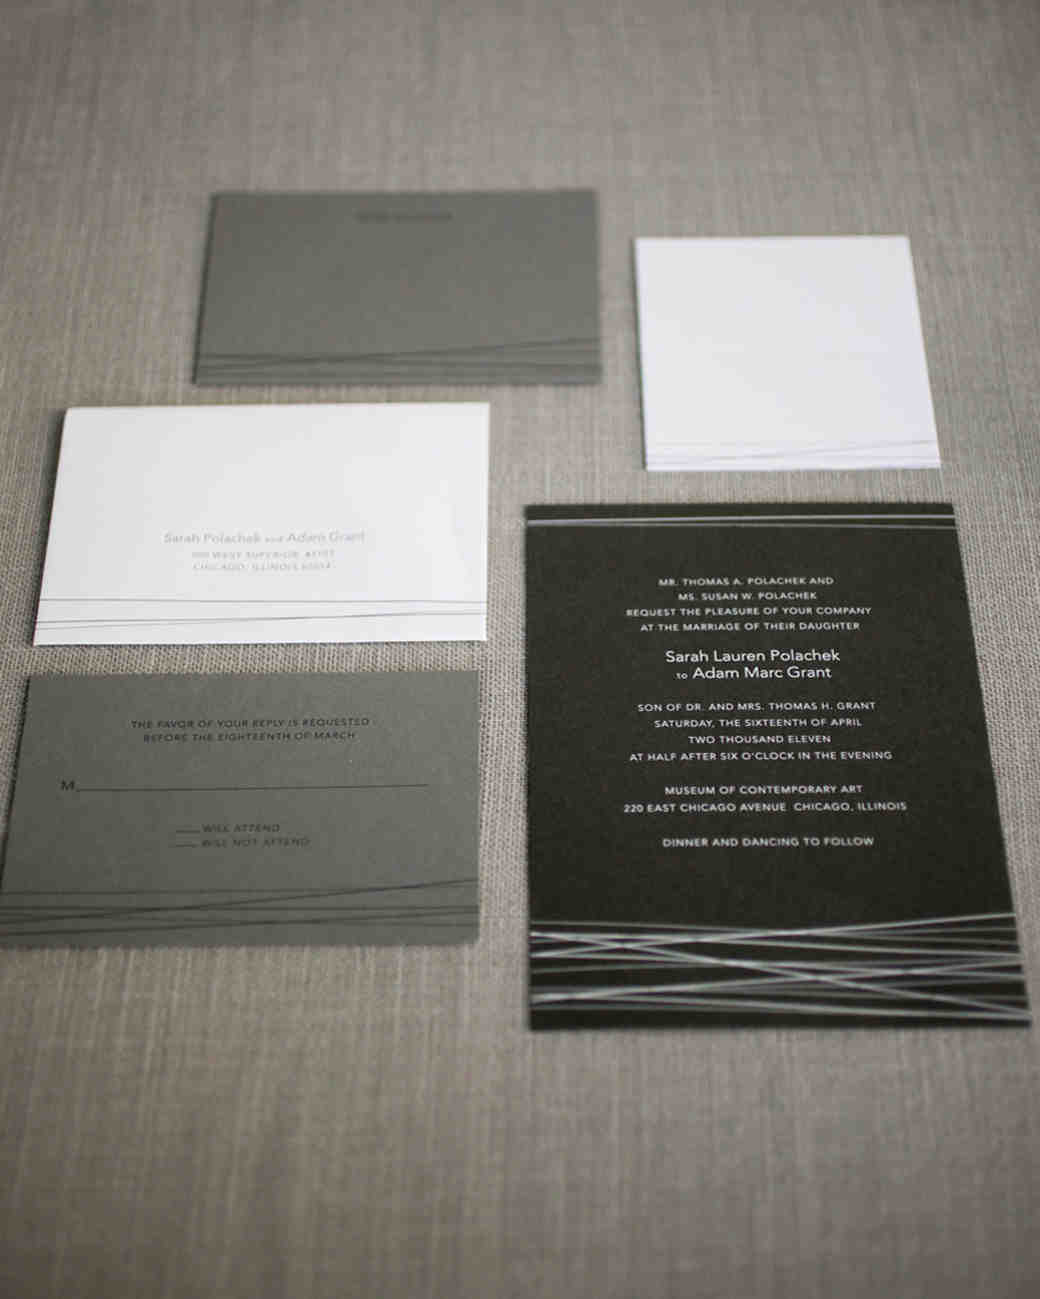 74 modern wedding invitations martha stewart weddings for Wedding invitation kits martha stewart